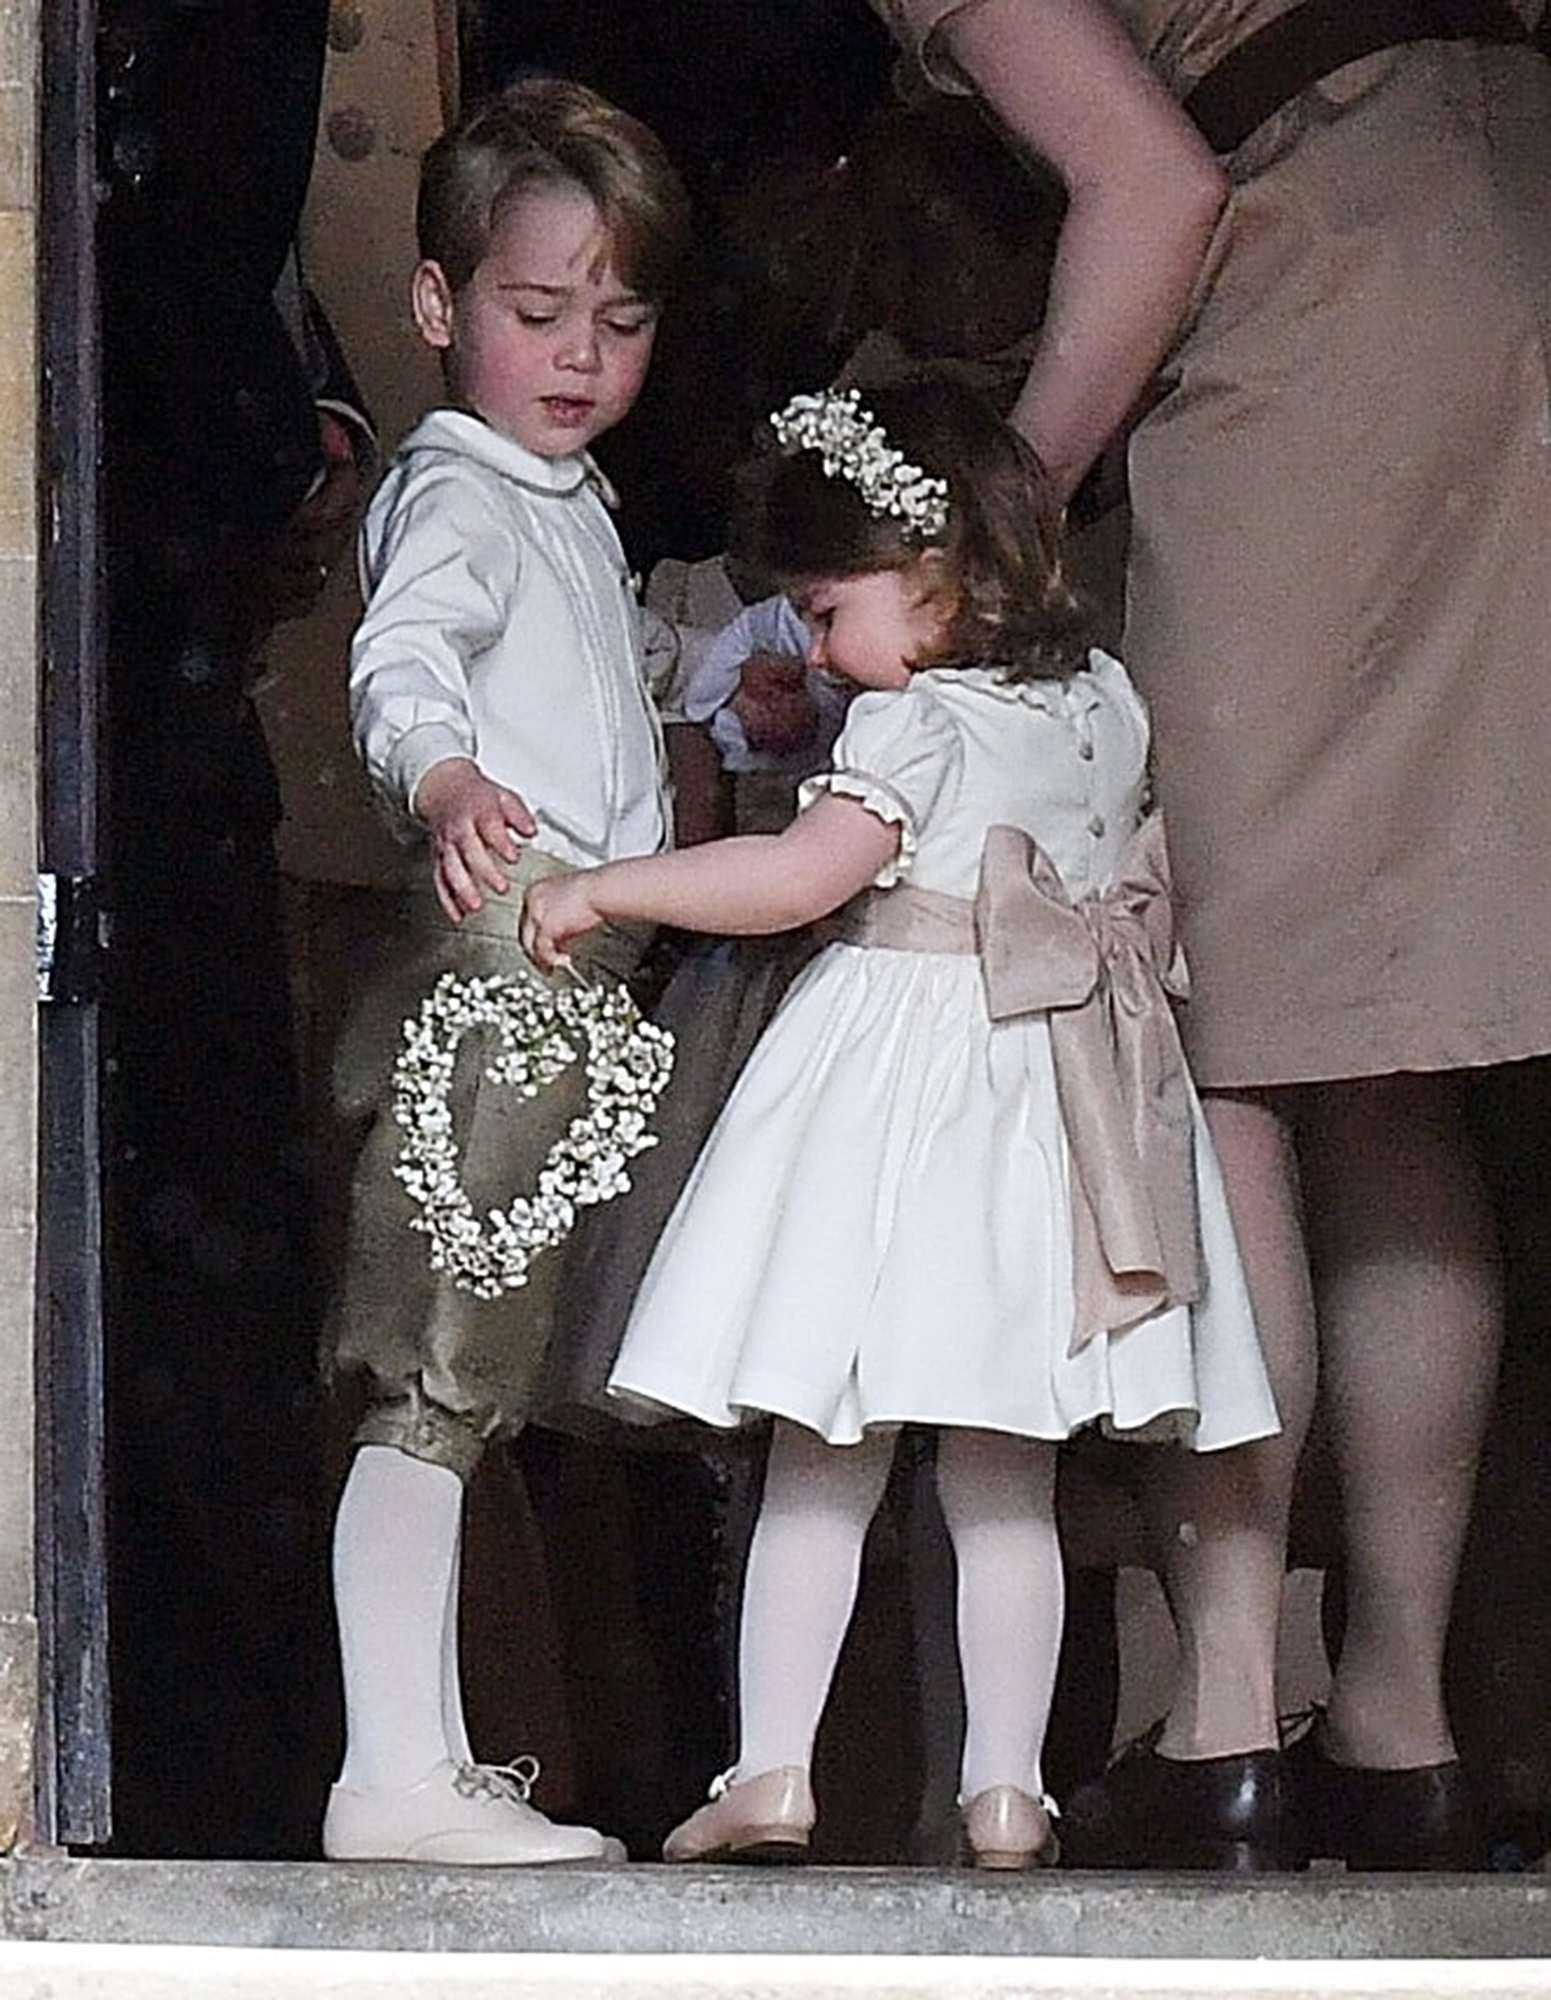 See an Adorable Prince George and Princess Charlotte in Aunt Pippa's Wedding!